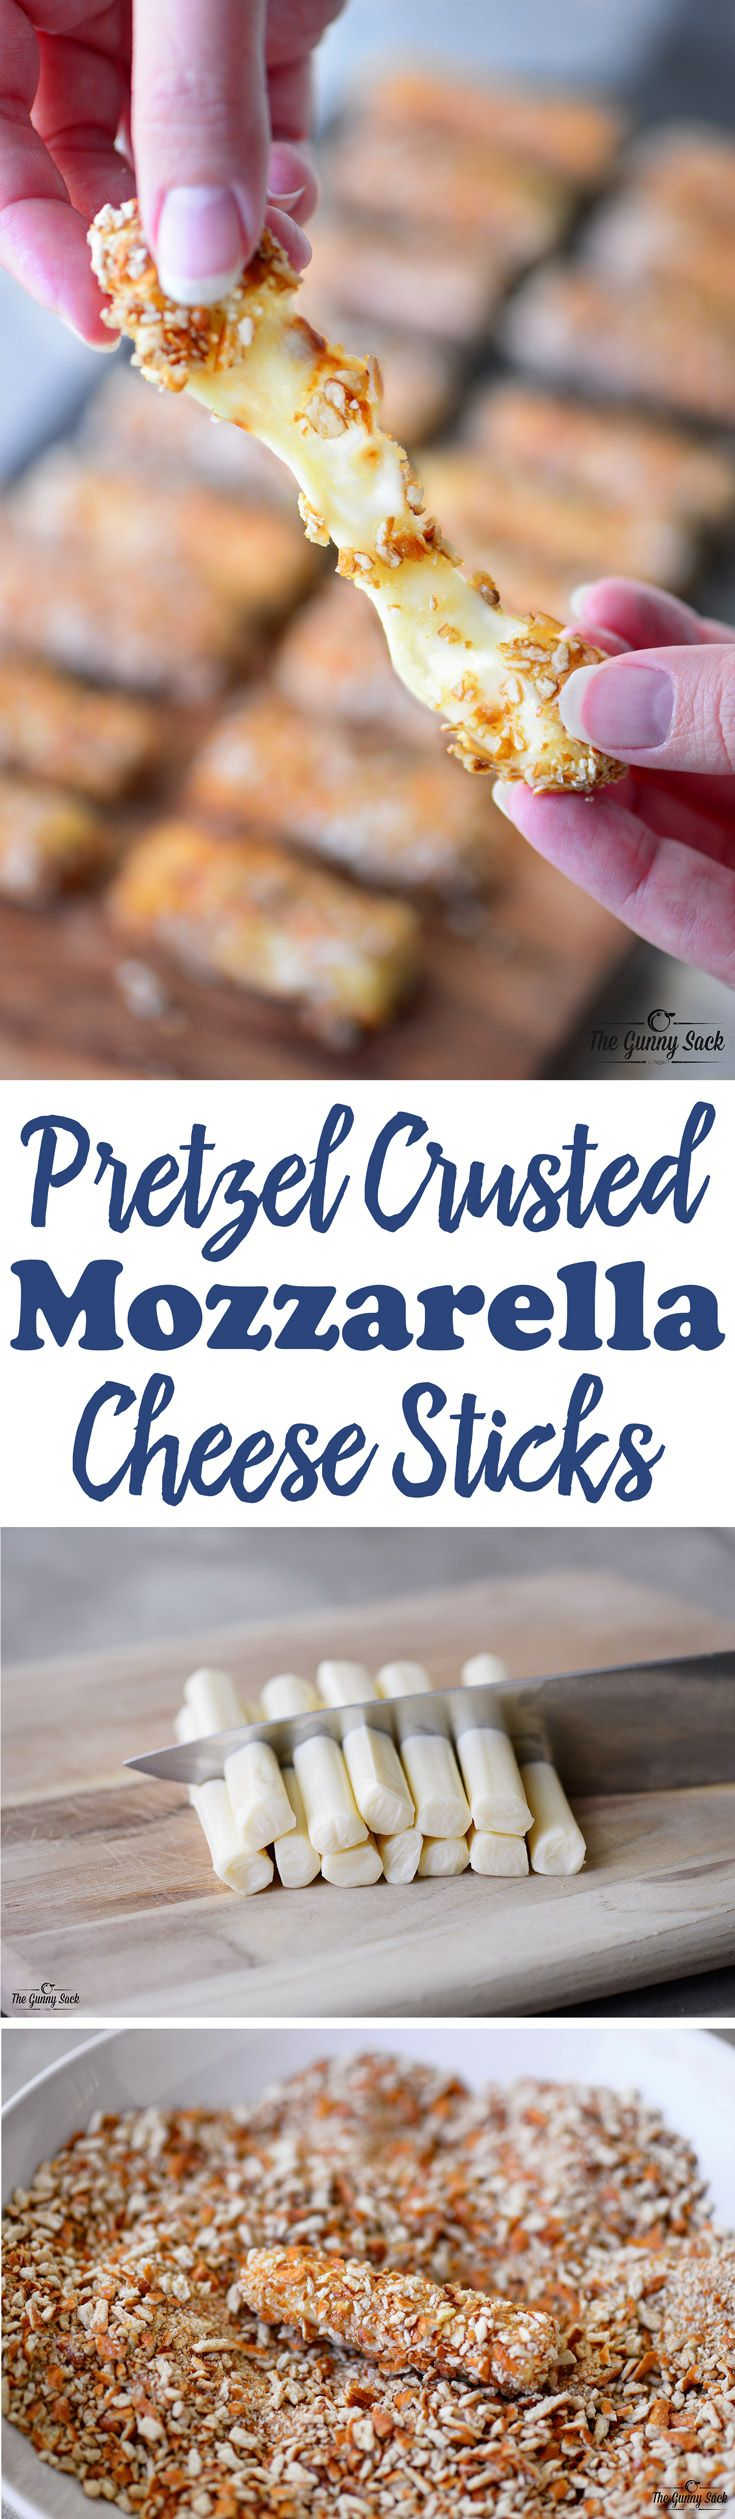 These Pretzel Crusted Mozzarella Cheese Sticks can be made ahead of time and kept in the freezer until ready to bake. Warm, melted, gooey cheese covered with crunchy, salty pretzels! The combination is irresistible.